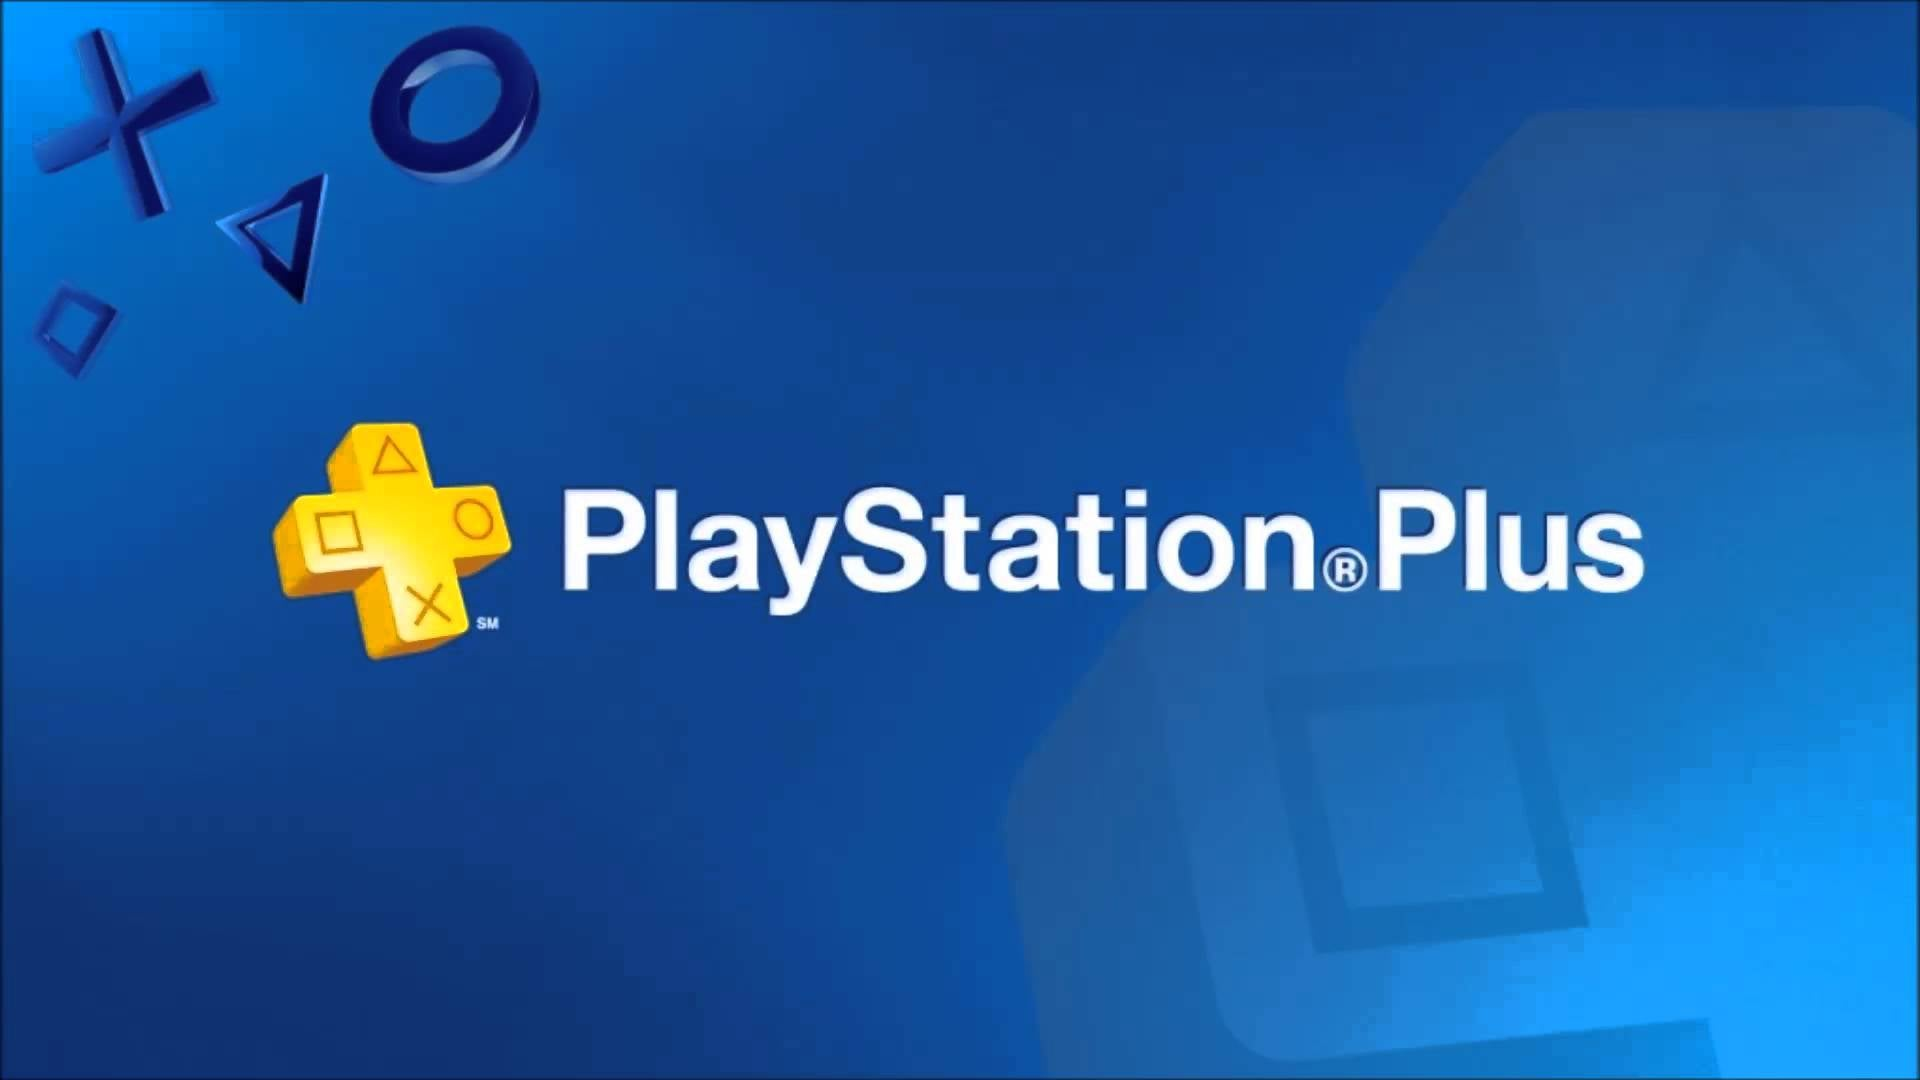 PlayStation Owners Can Soon Vote On PS Plus Games